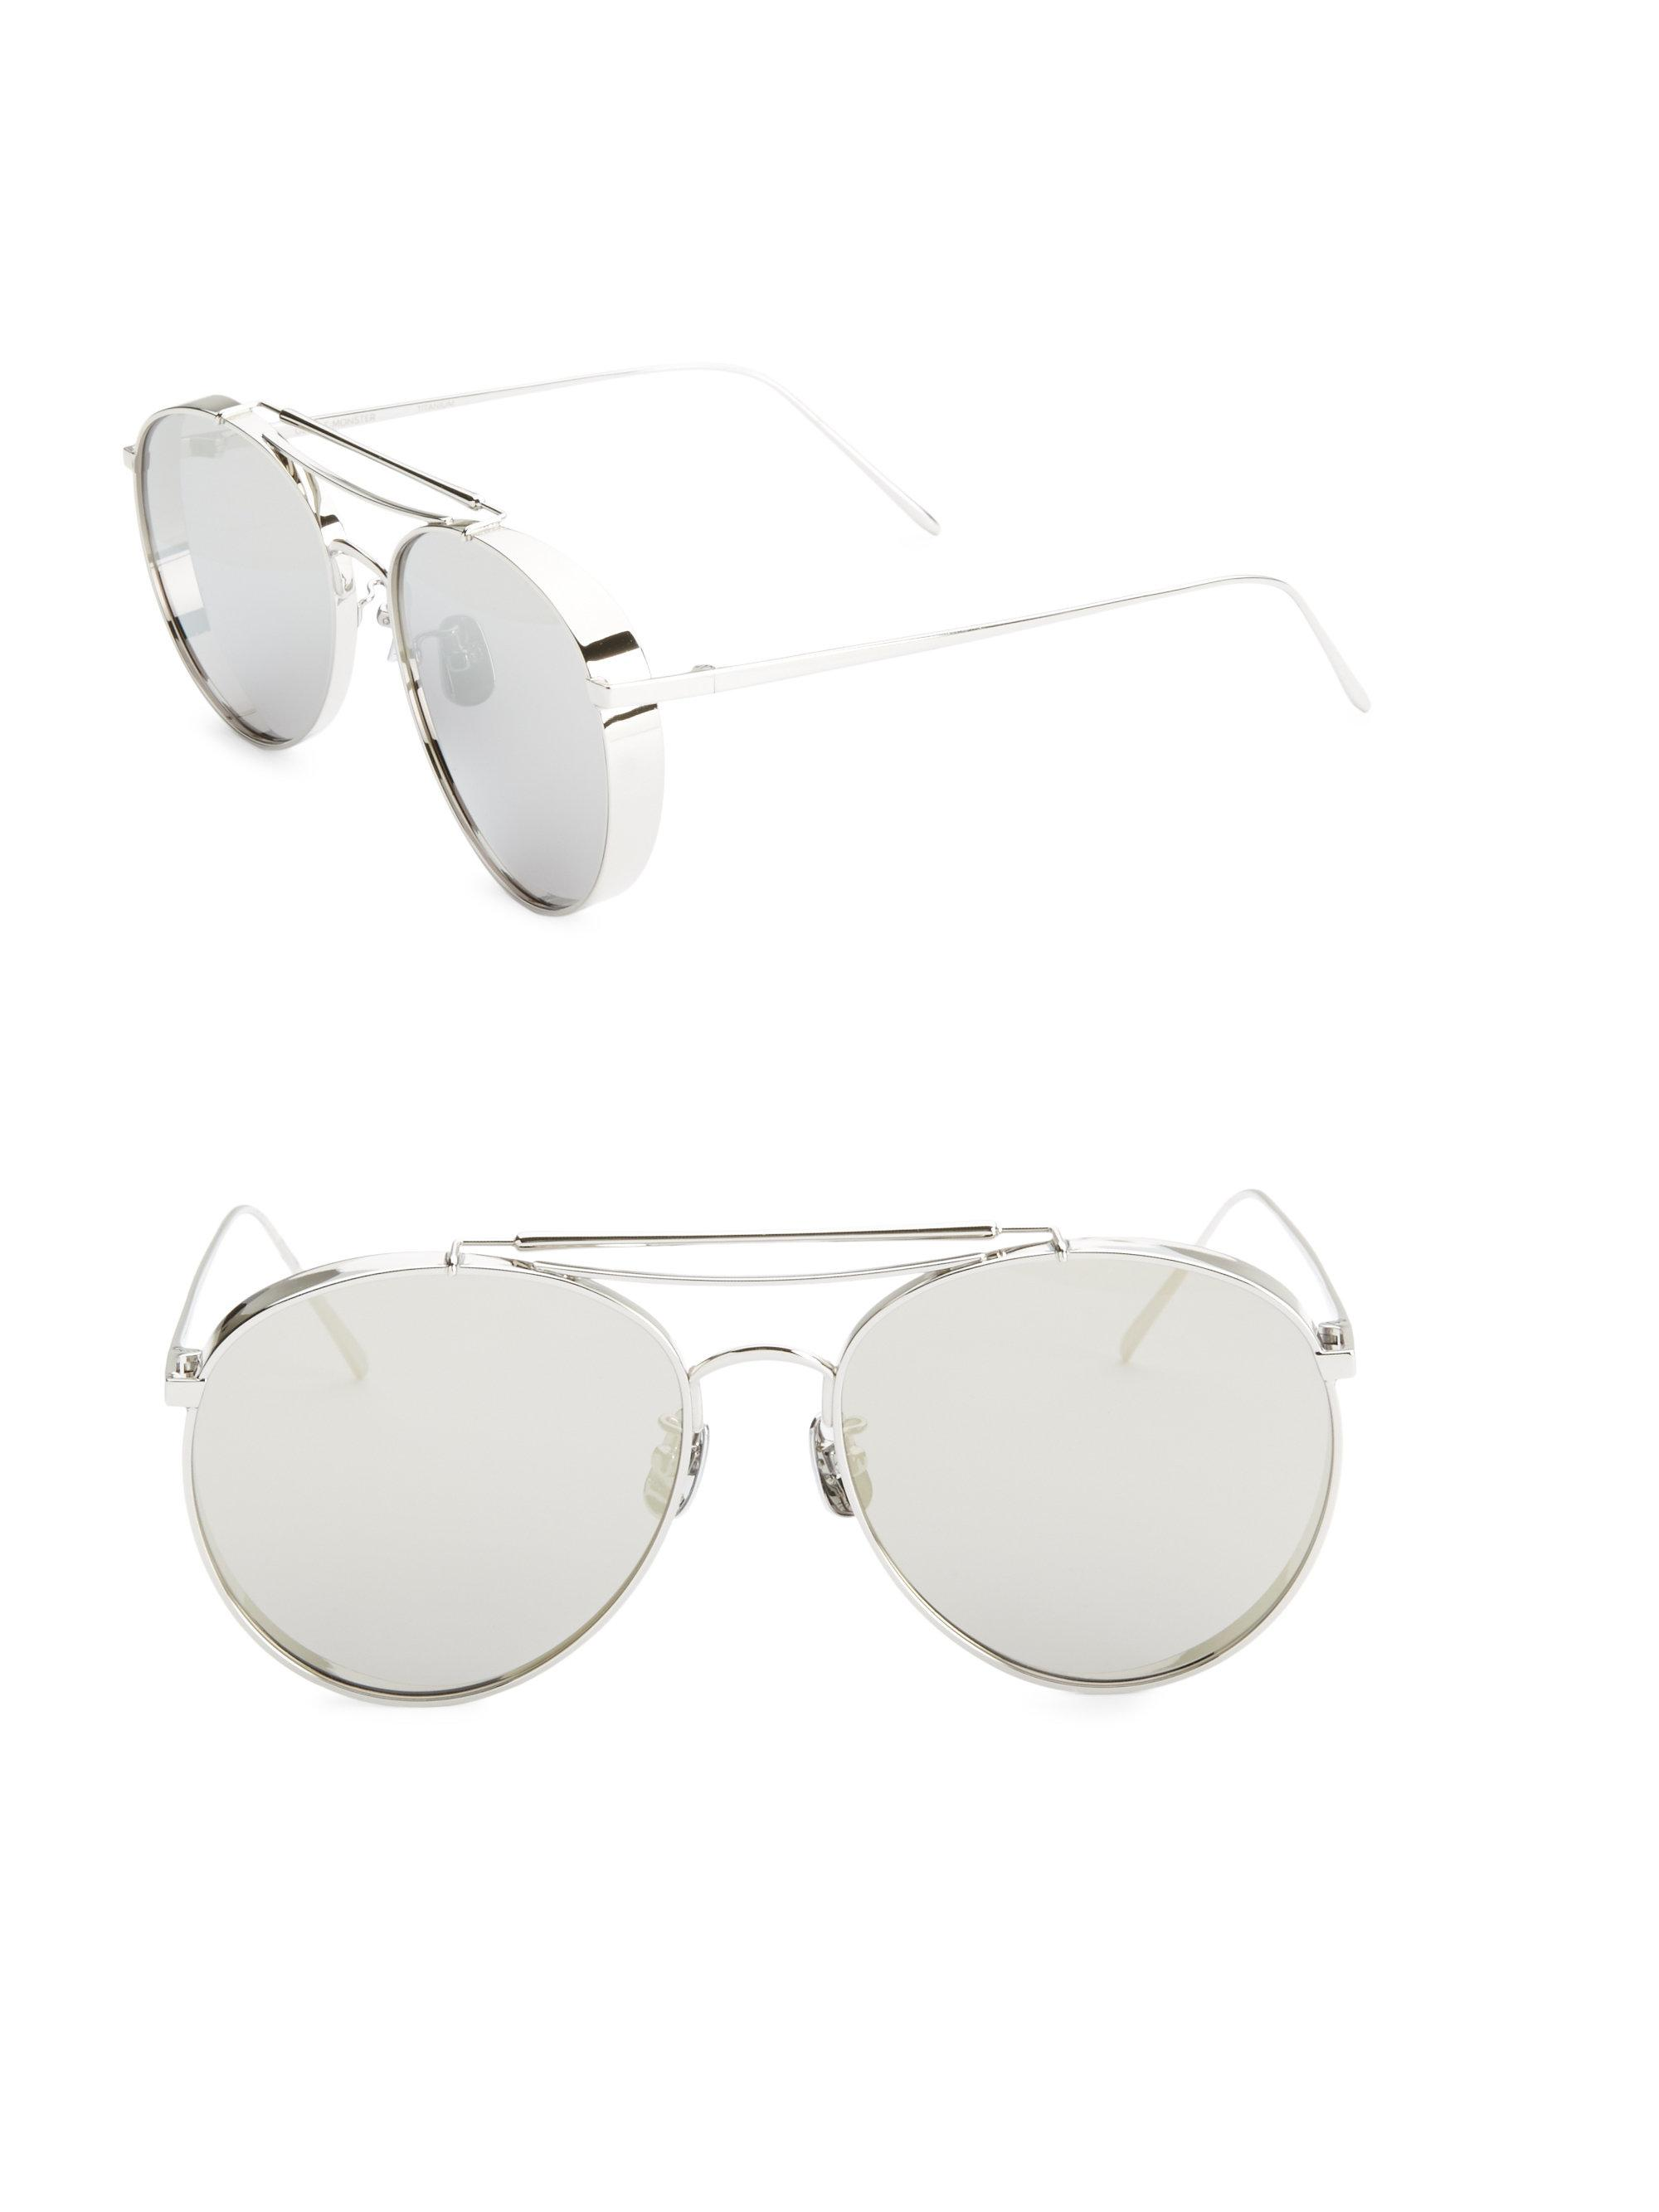 c6eb86f76505 Gentle Monster 56mm Big Bully Aviator Sunglasses in Gray - Lyst